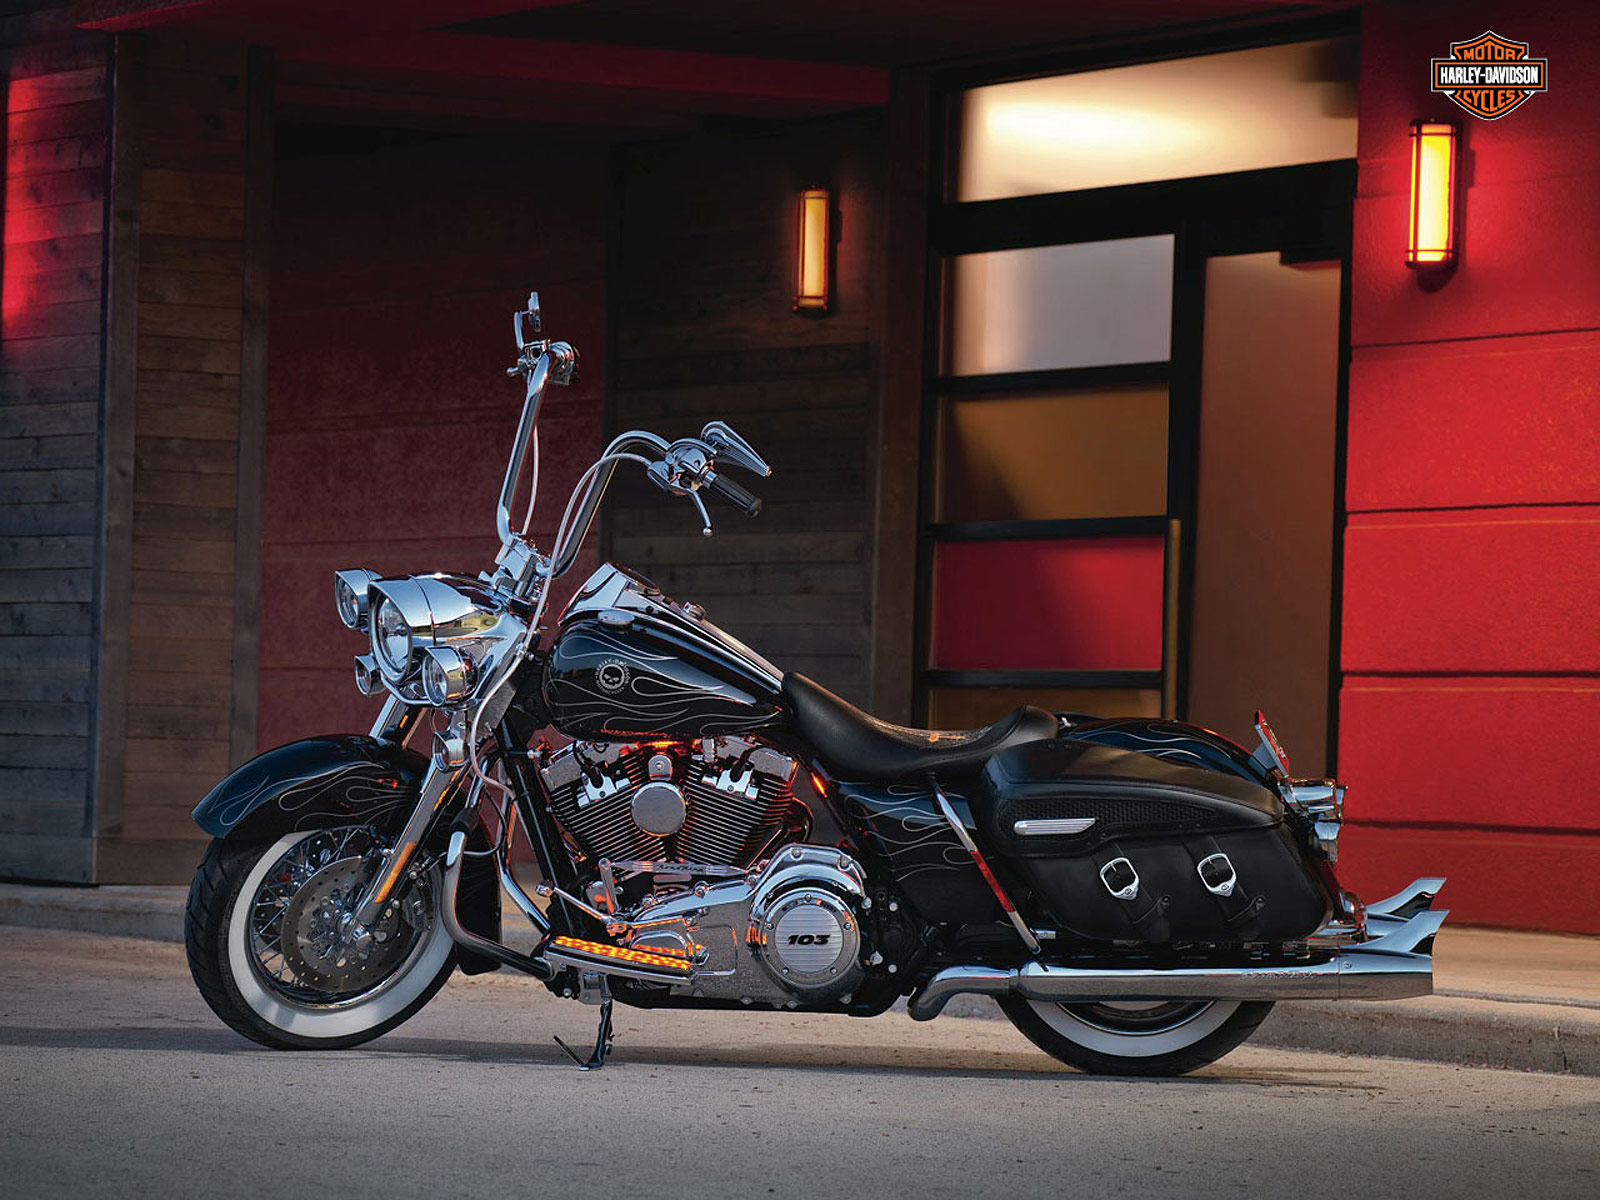 Motorcycles 2012 Harley Davidson Flhrc Road King Classic